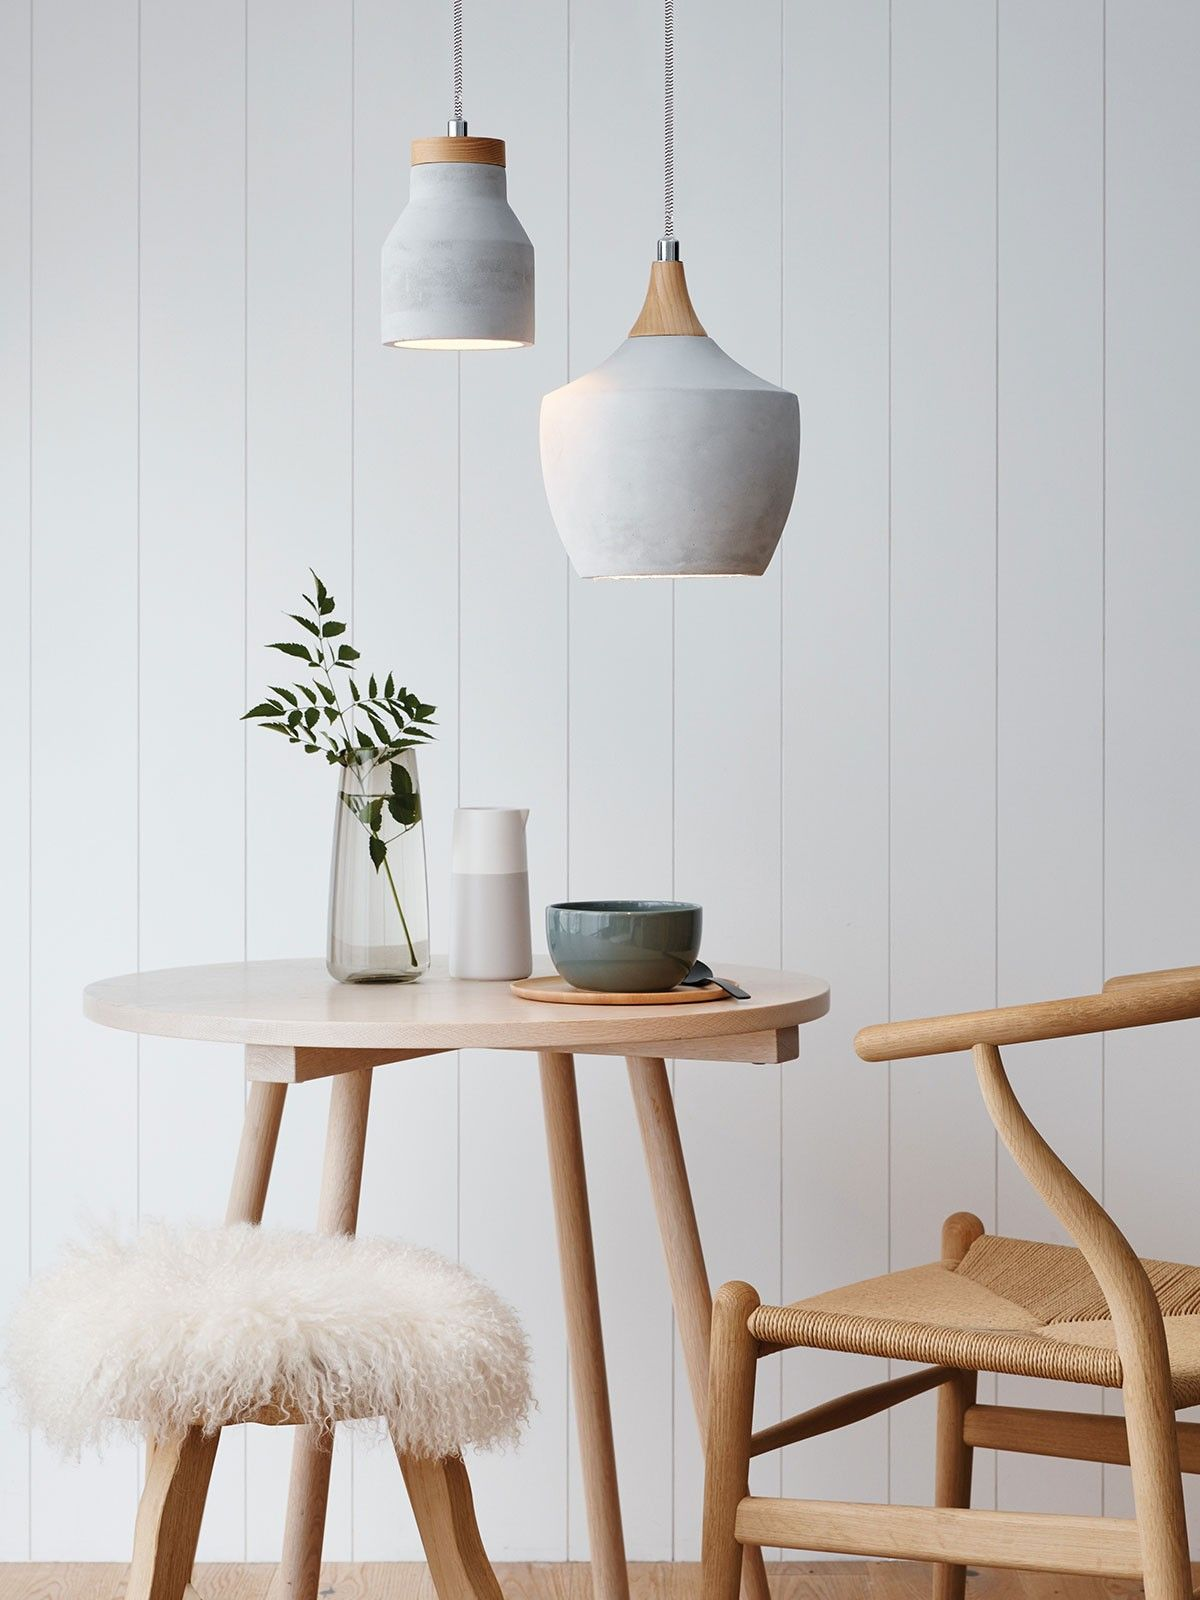 14 Rooms Flawlessly Incorporating Spring's Concrete Trend Concretependant Light768x1024